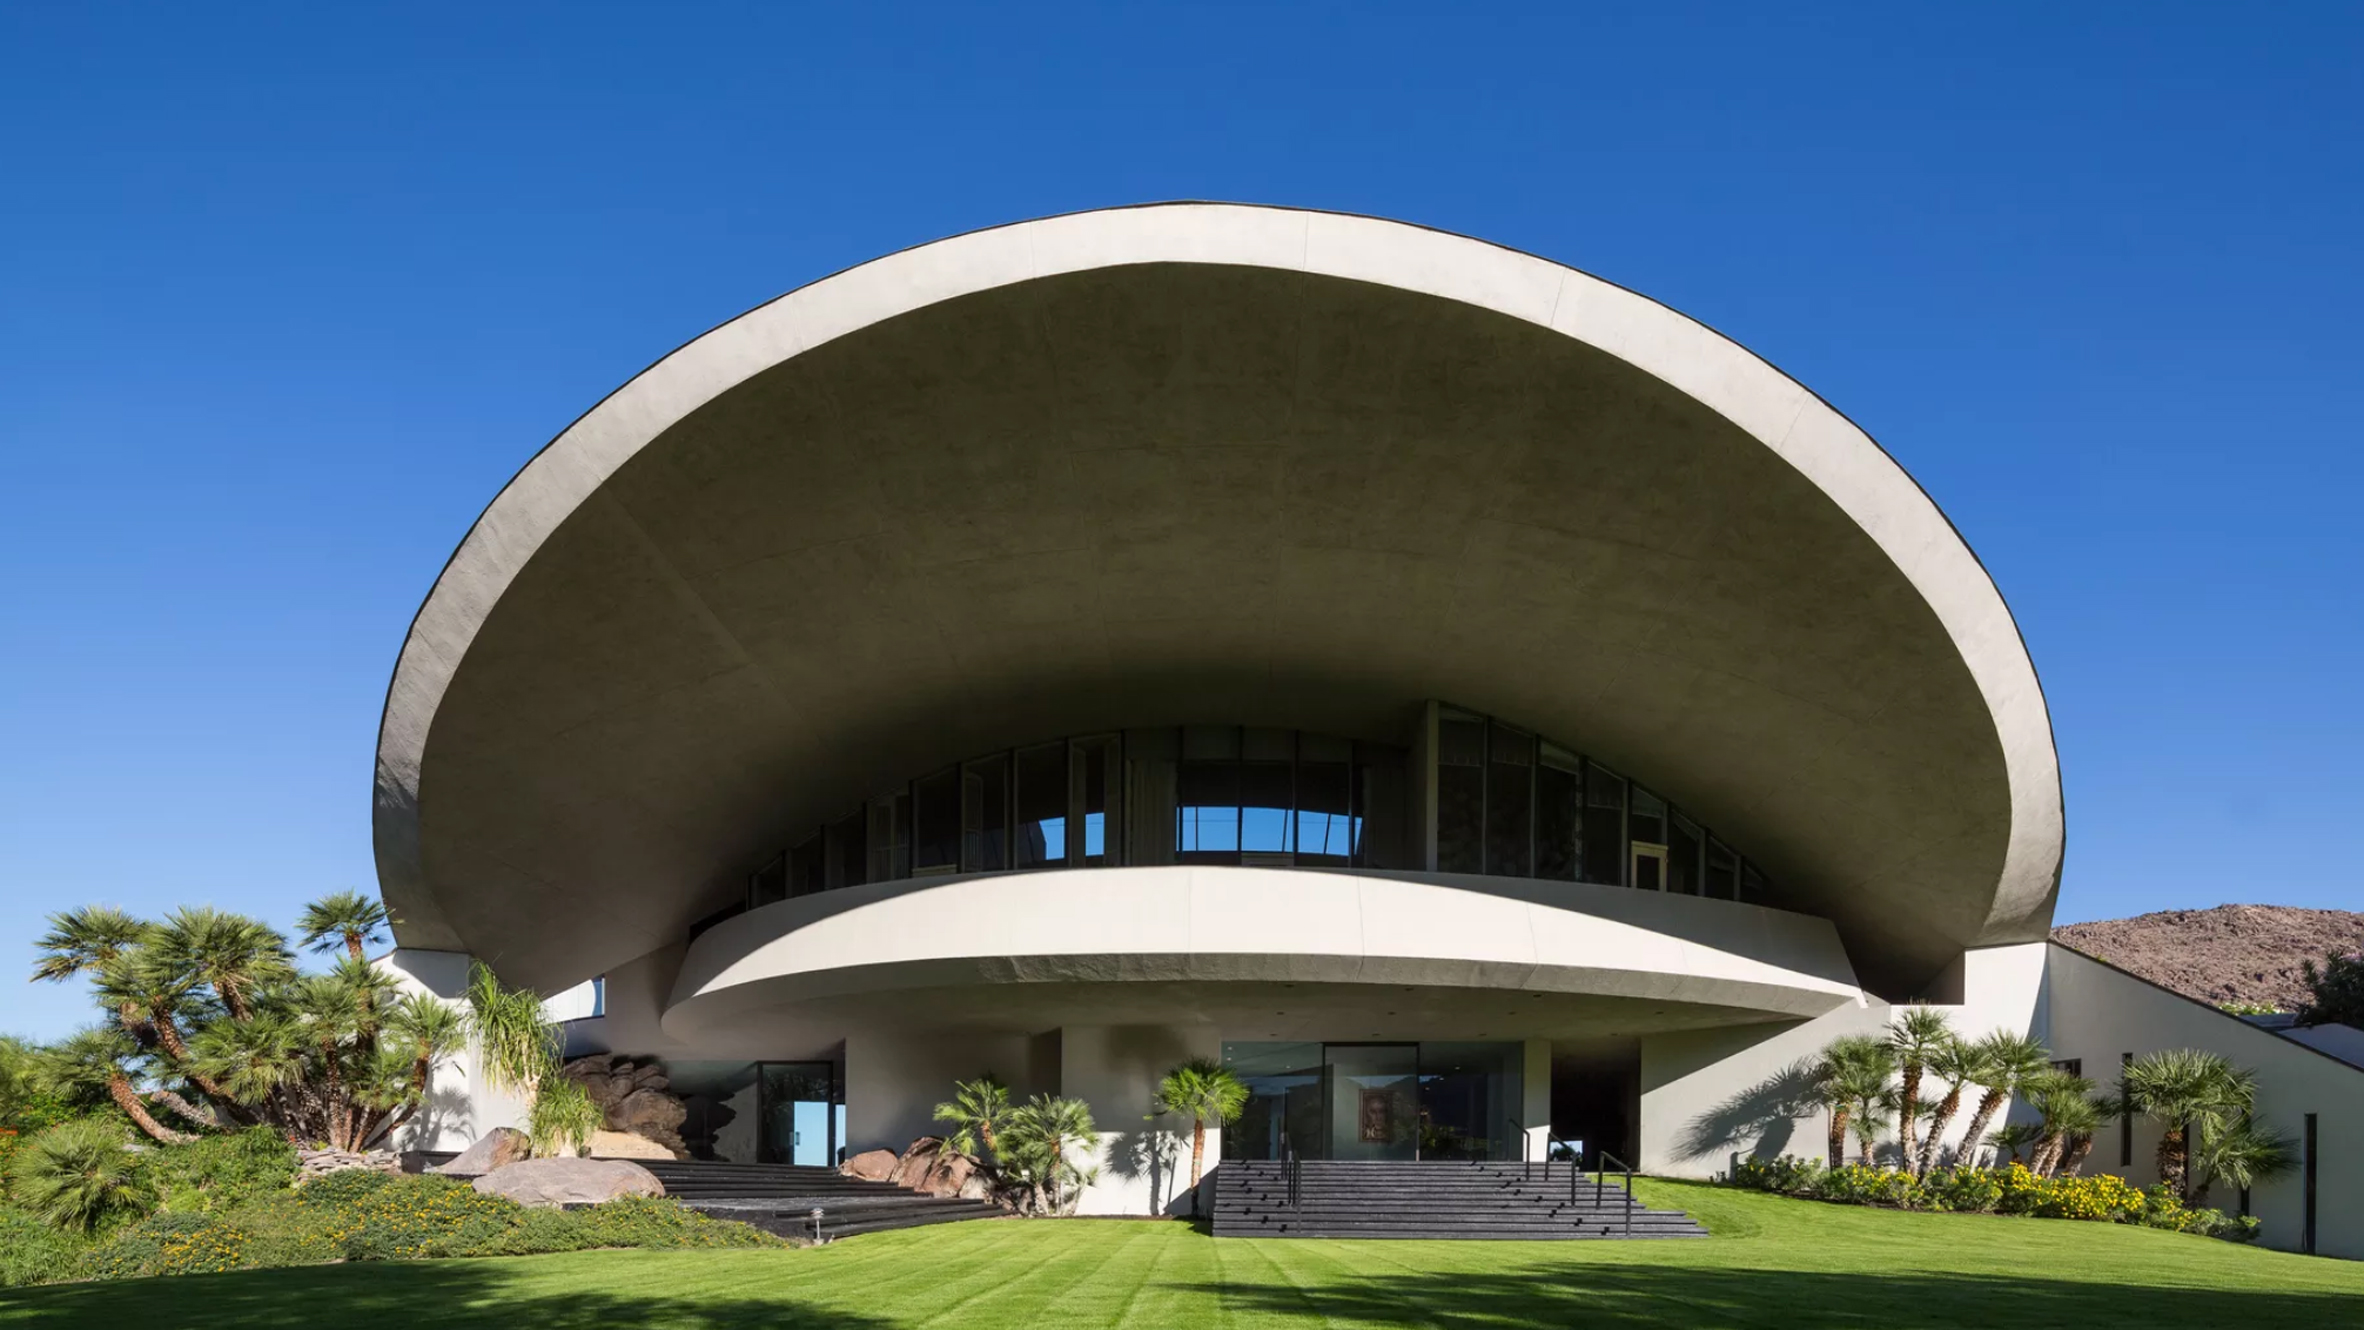 John Lautner Punctured Hope Residence S Giant Roof With A Crater Like Hole